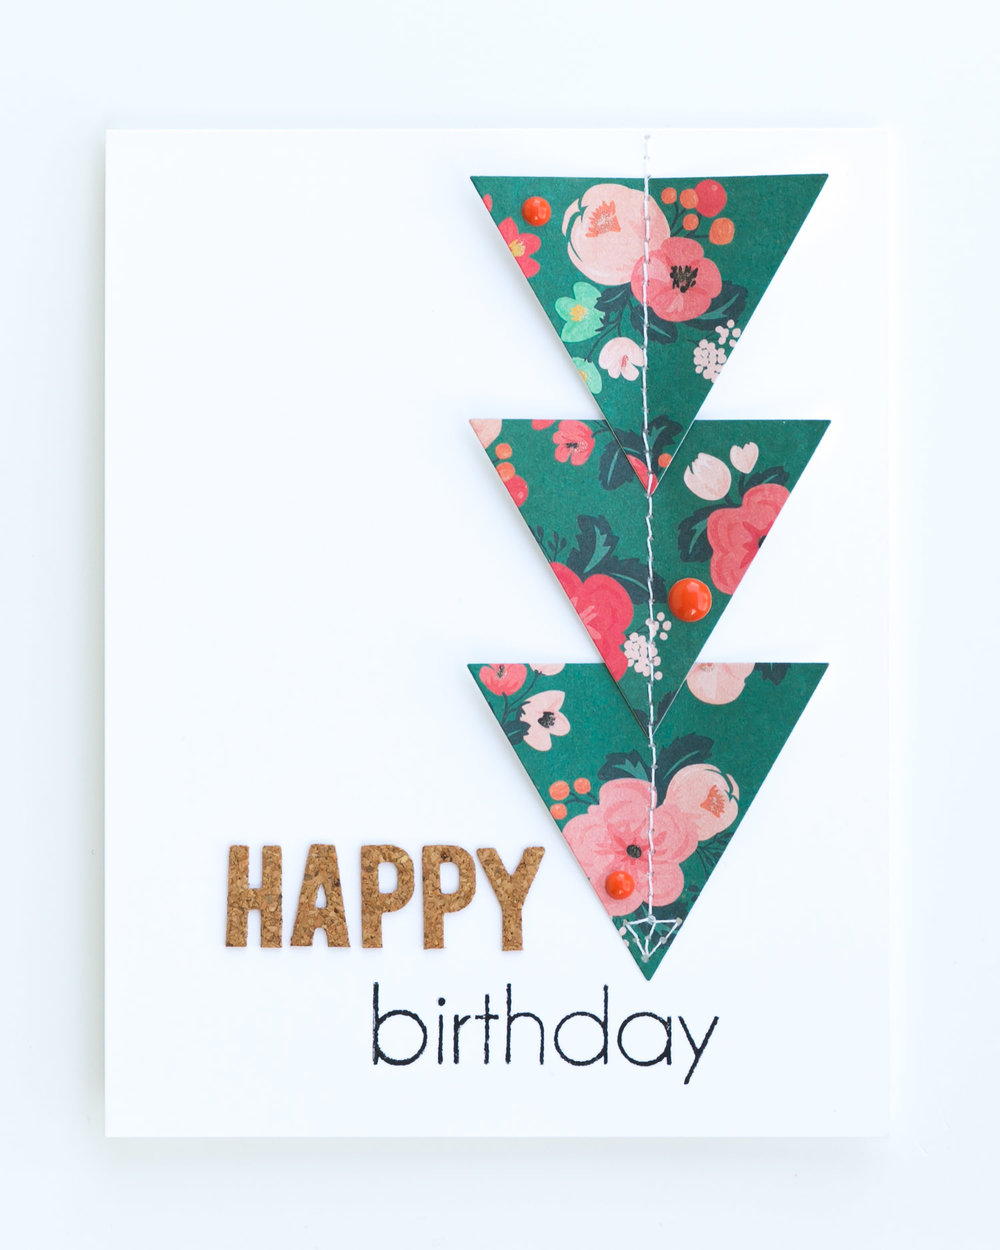 Triangle Birthday Card by @pixnglue